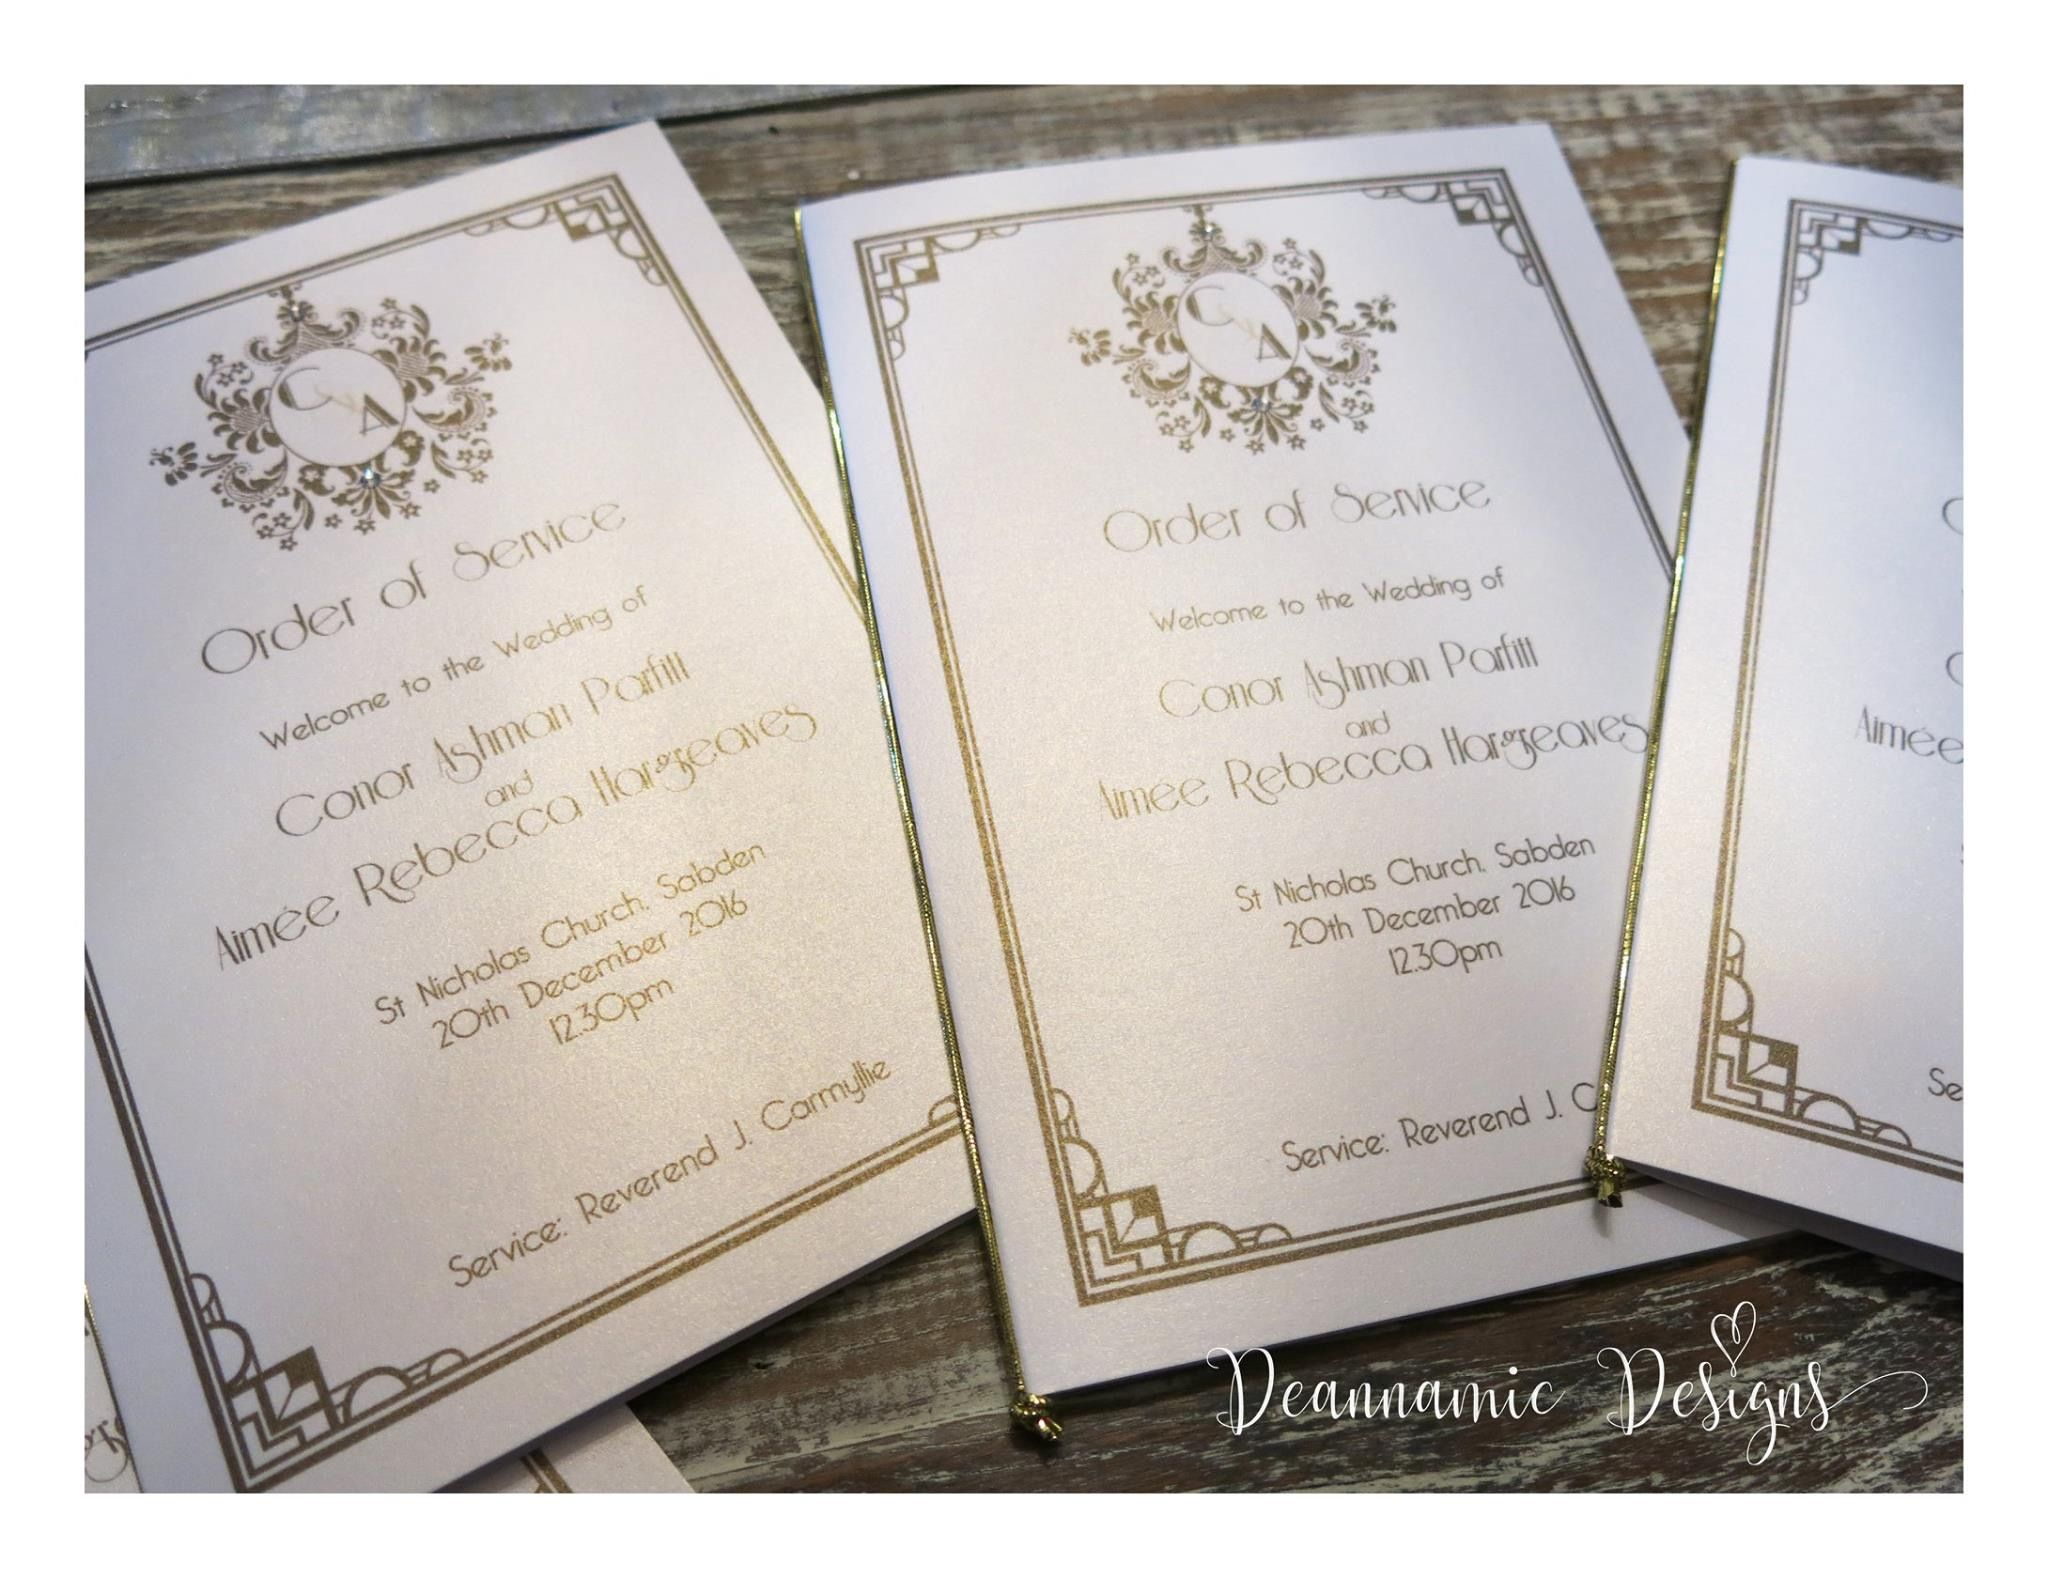 Art Deco themed stationery Deannamic Designs